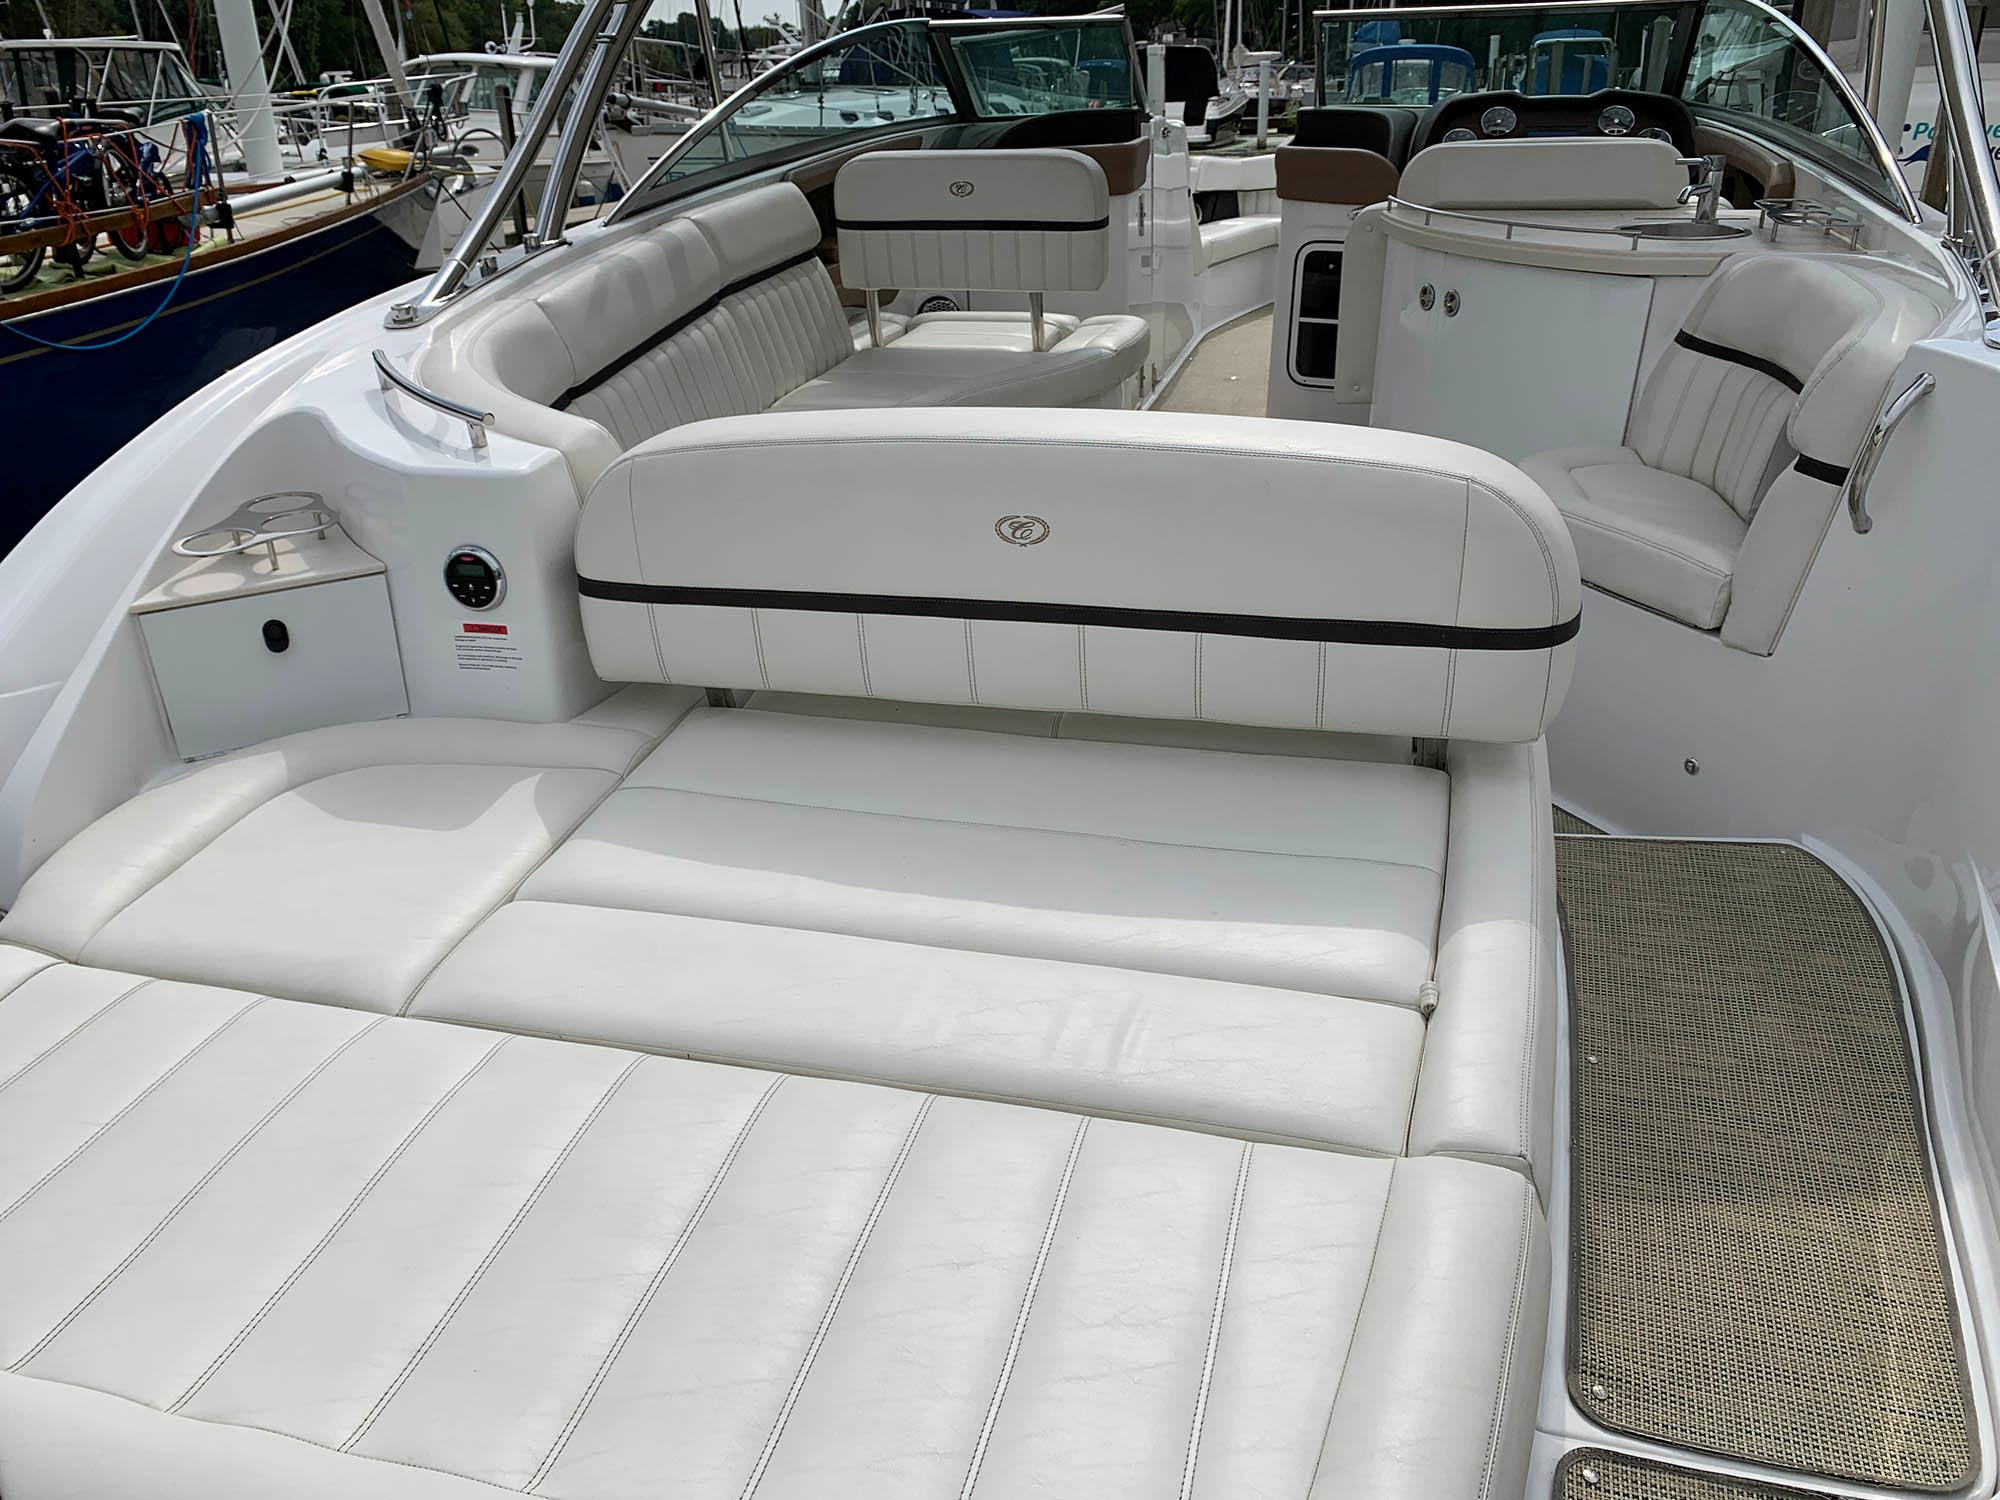 OH 5656 HG Knot 10 Yacht Sales